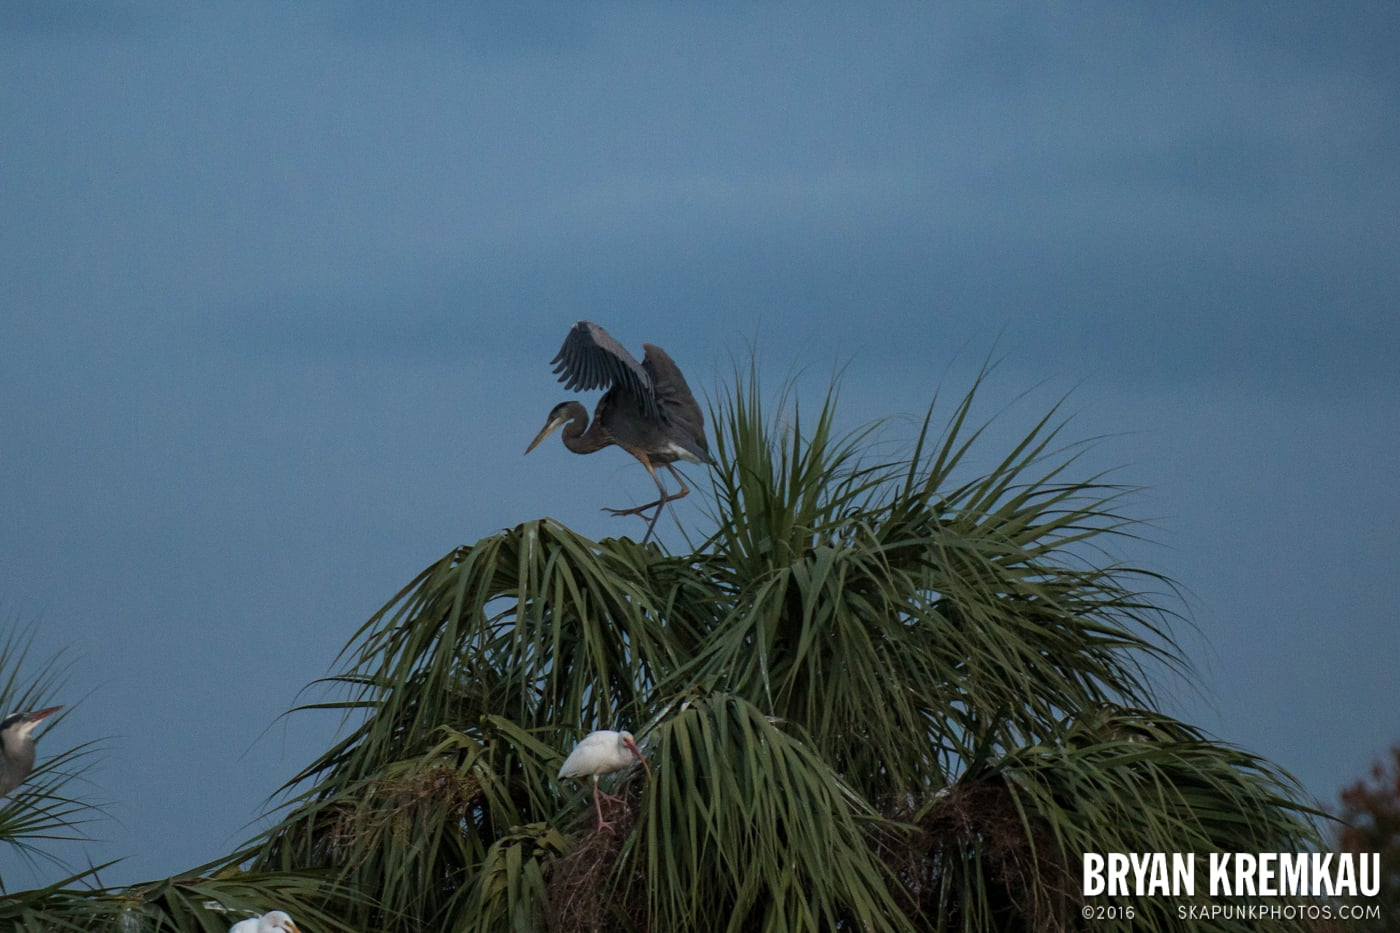 Sunsets, Astrophotography & Birds @ Venice, Florida - 10.25.14 - 11.5.14 (8)